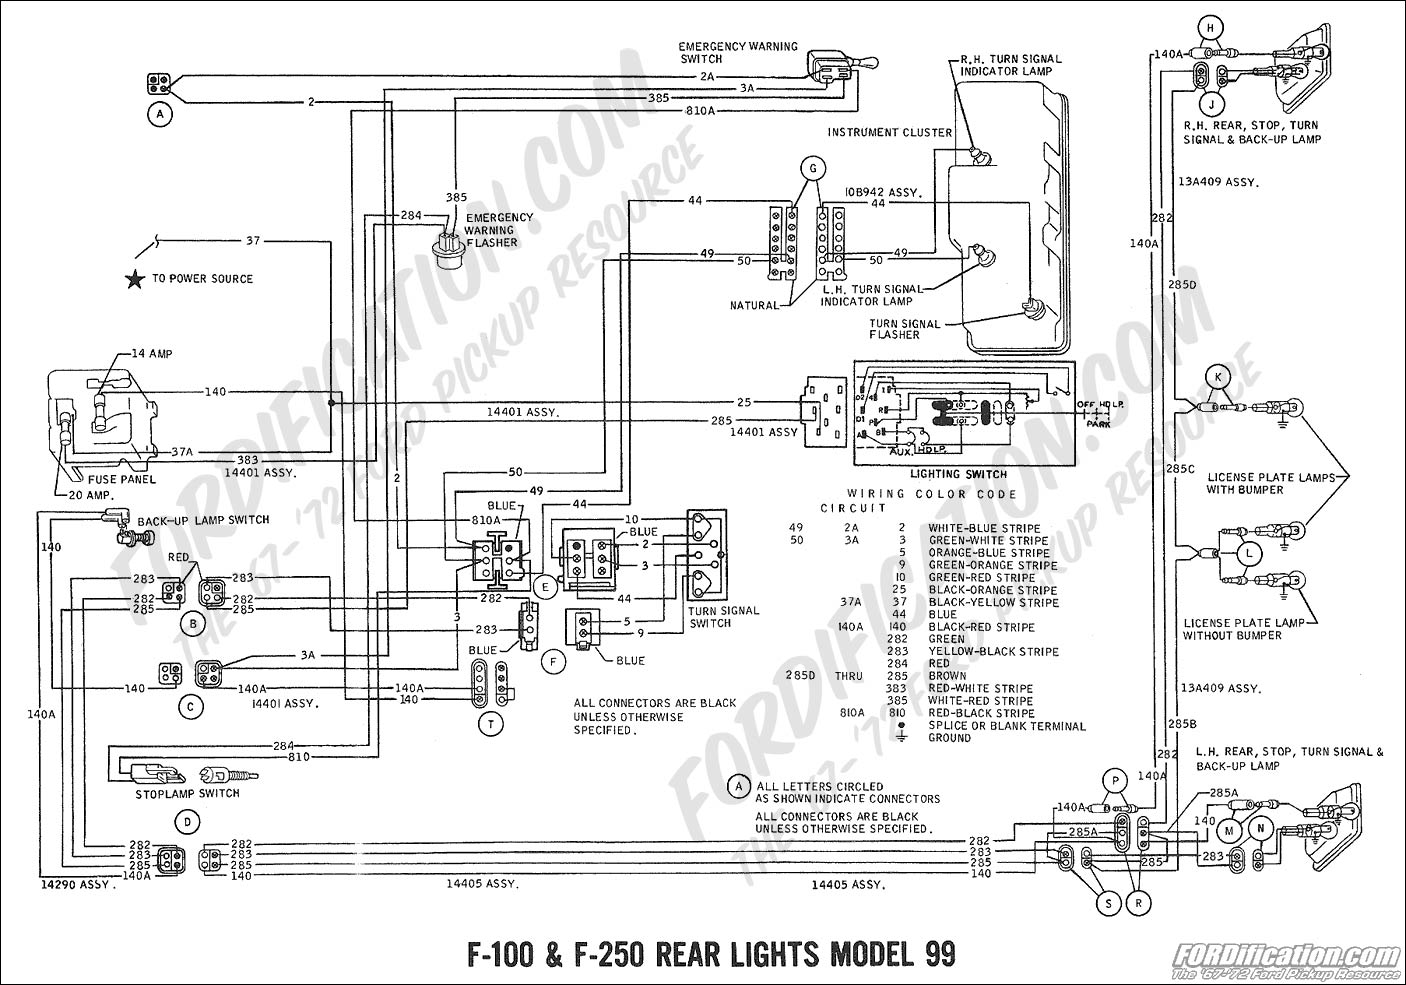 99 CIVIC WIRING DIAGRAM COURTESY LIGHTS L21935 furthermore Wiring Problem Help 66 77 Early Bronco Tech Support additionally 1964 Falcon Wiring Harness Free Download Diagram Schematic furthermore RepairGuideContent in addition 1959 641 Workmaster Wiring Diagram. on ford f100 turn signal wiring diagrams